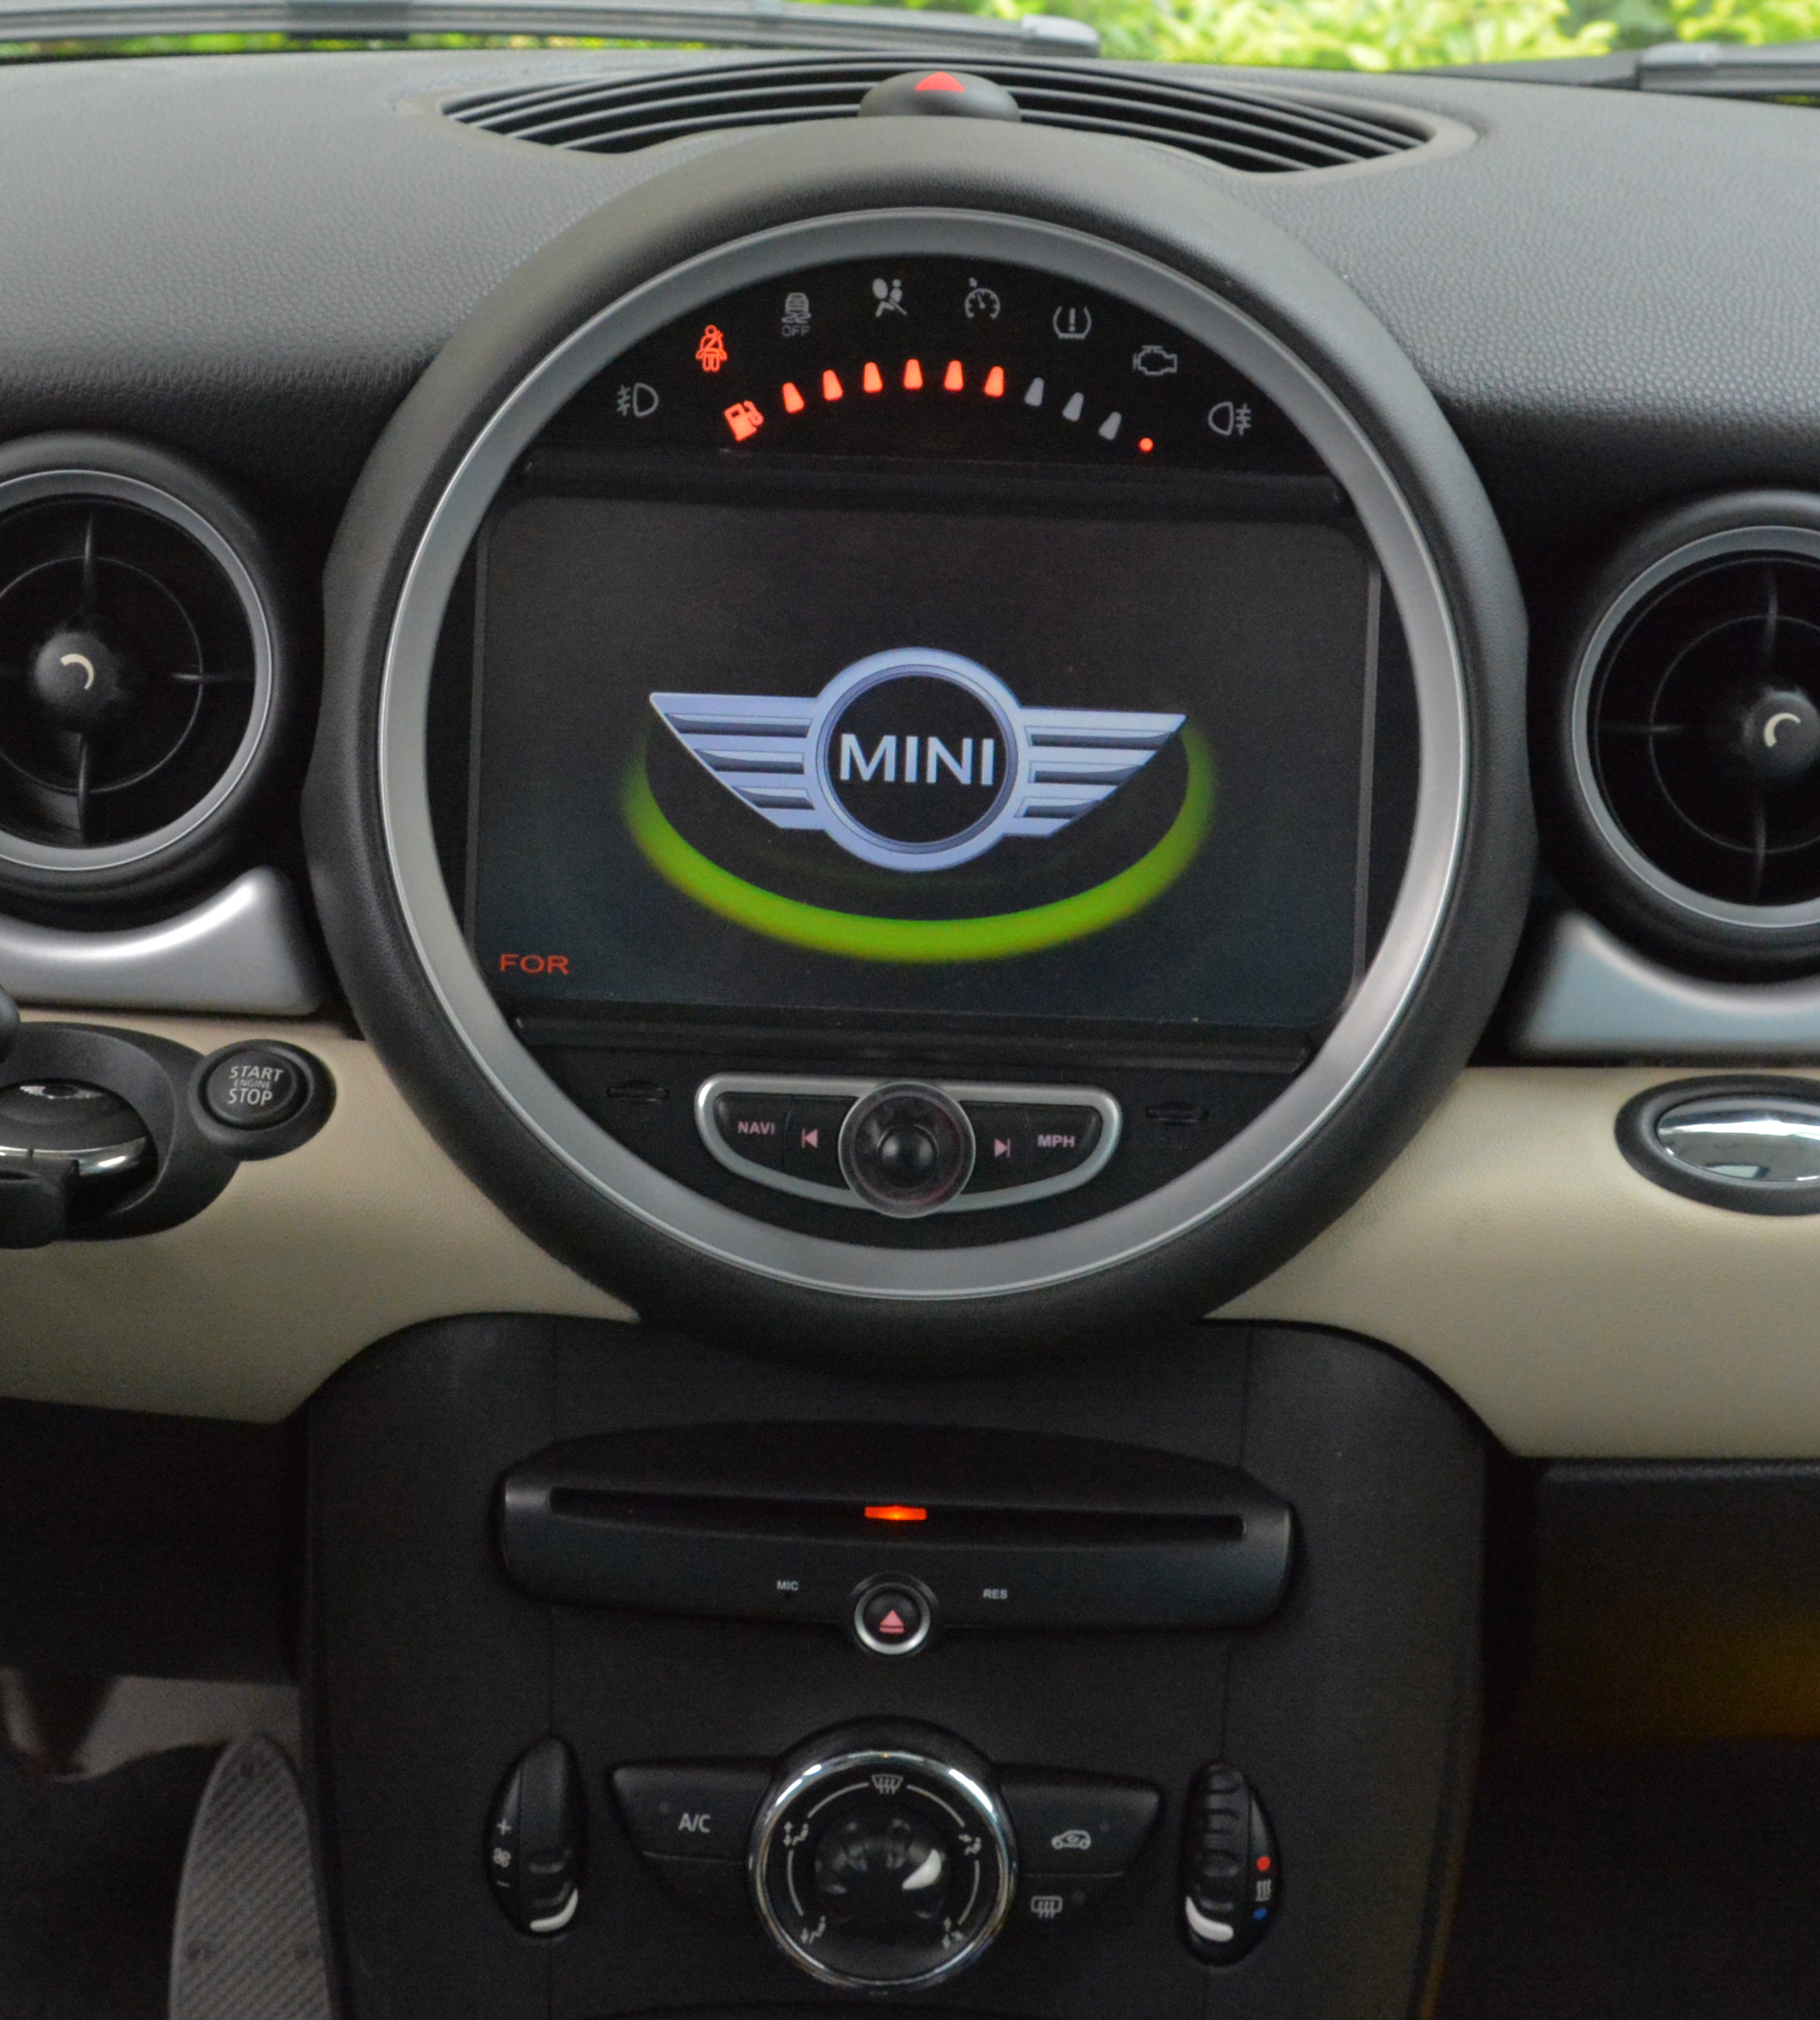 autoradio gps dvd mini cooper 2006 2013 cran tactile 7 hightech privee